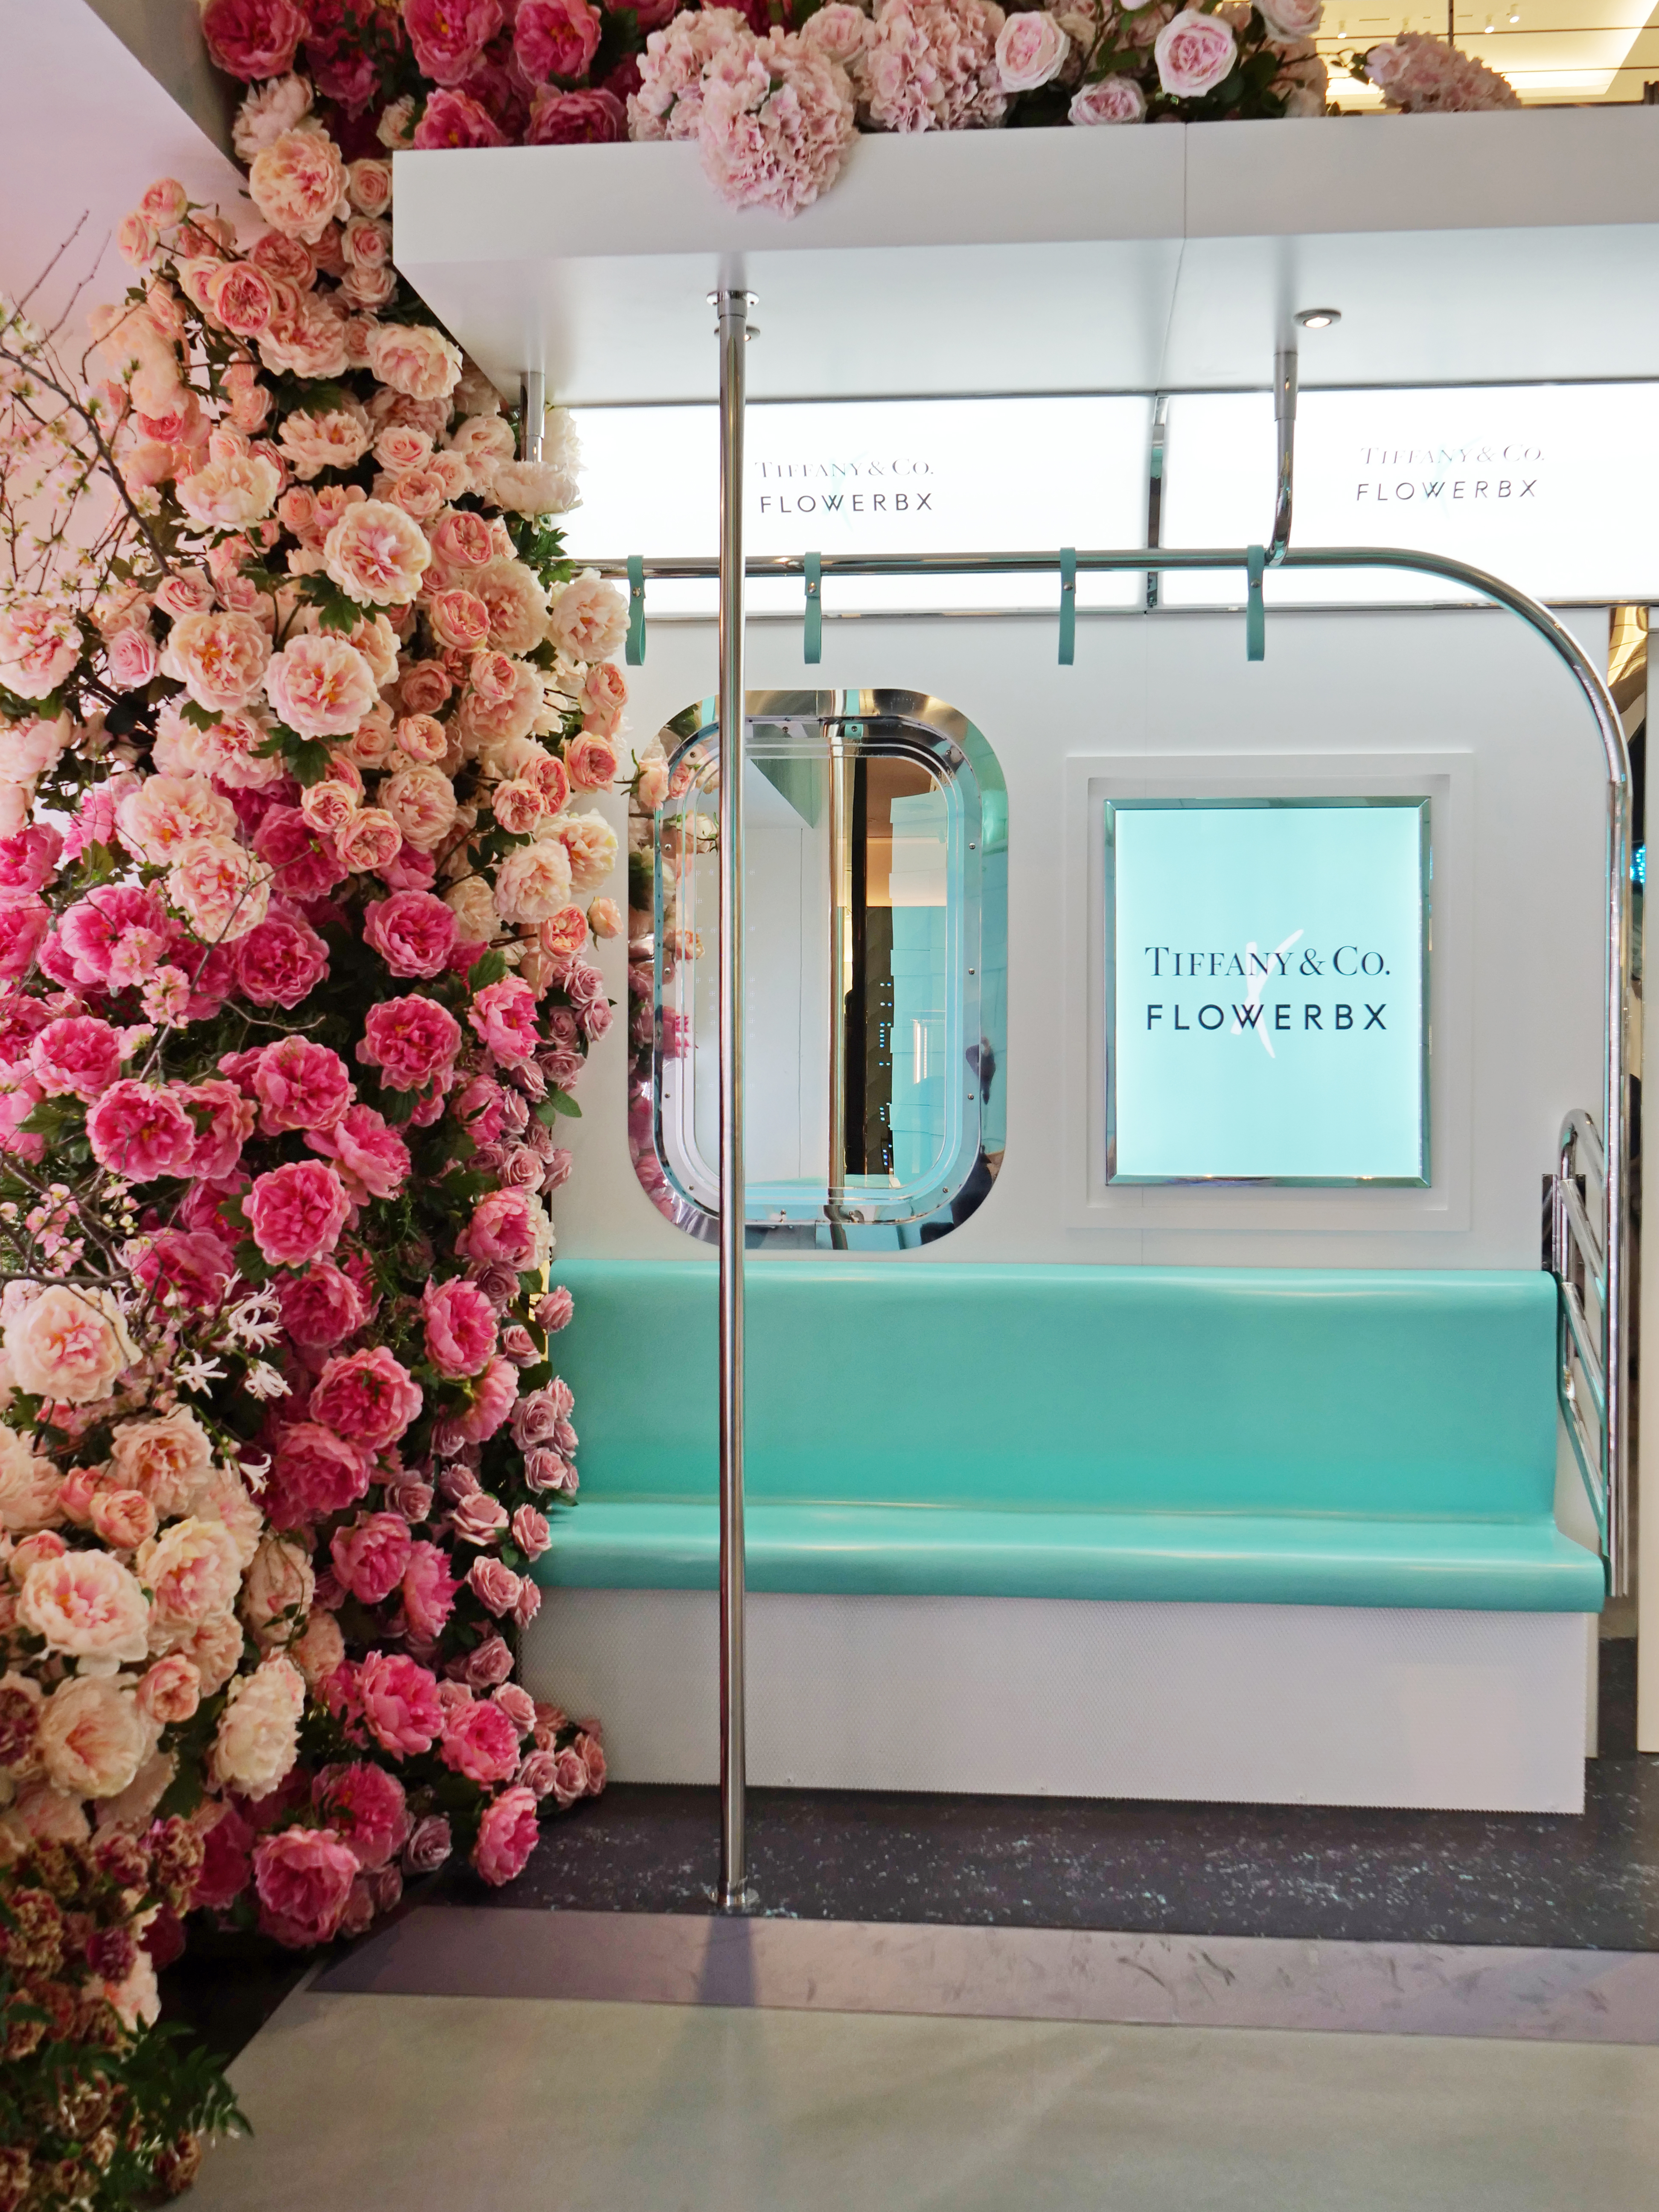 NYC Tiffany and Co Valentine's Day Subway Flower Installation